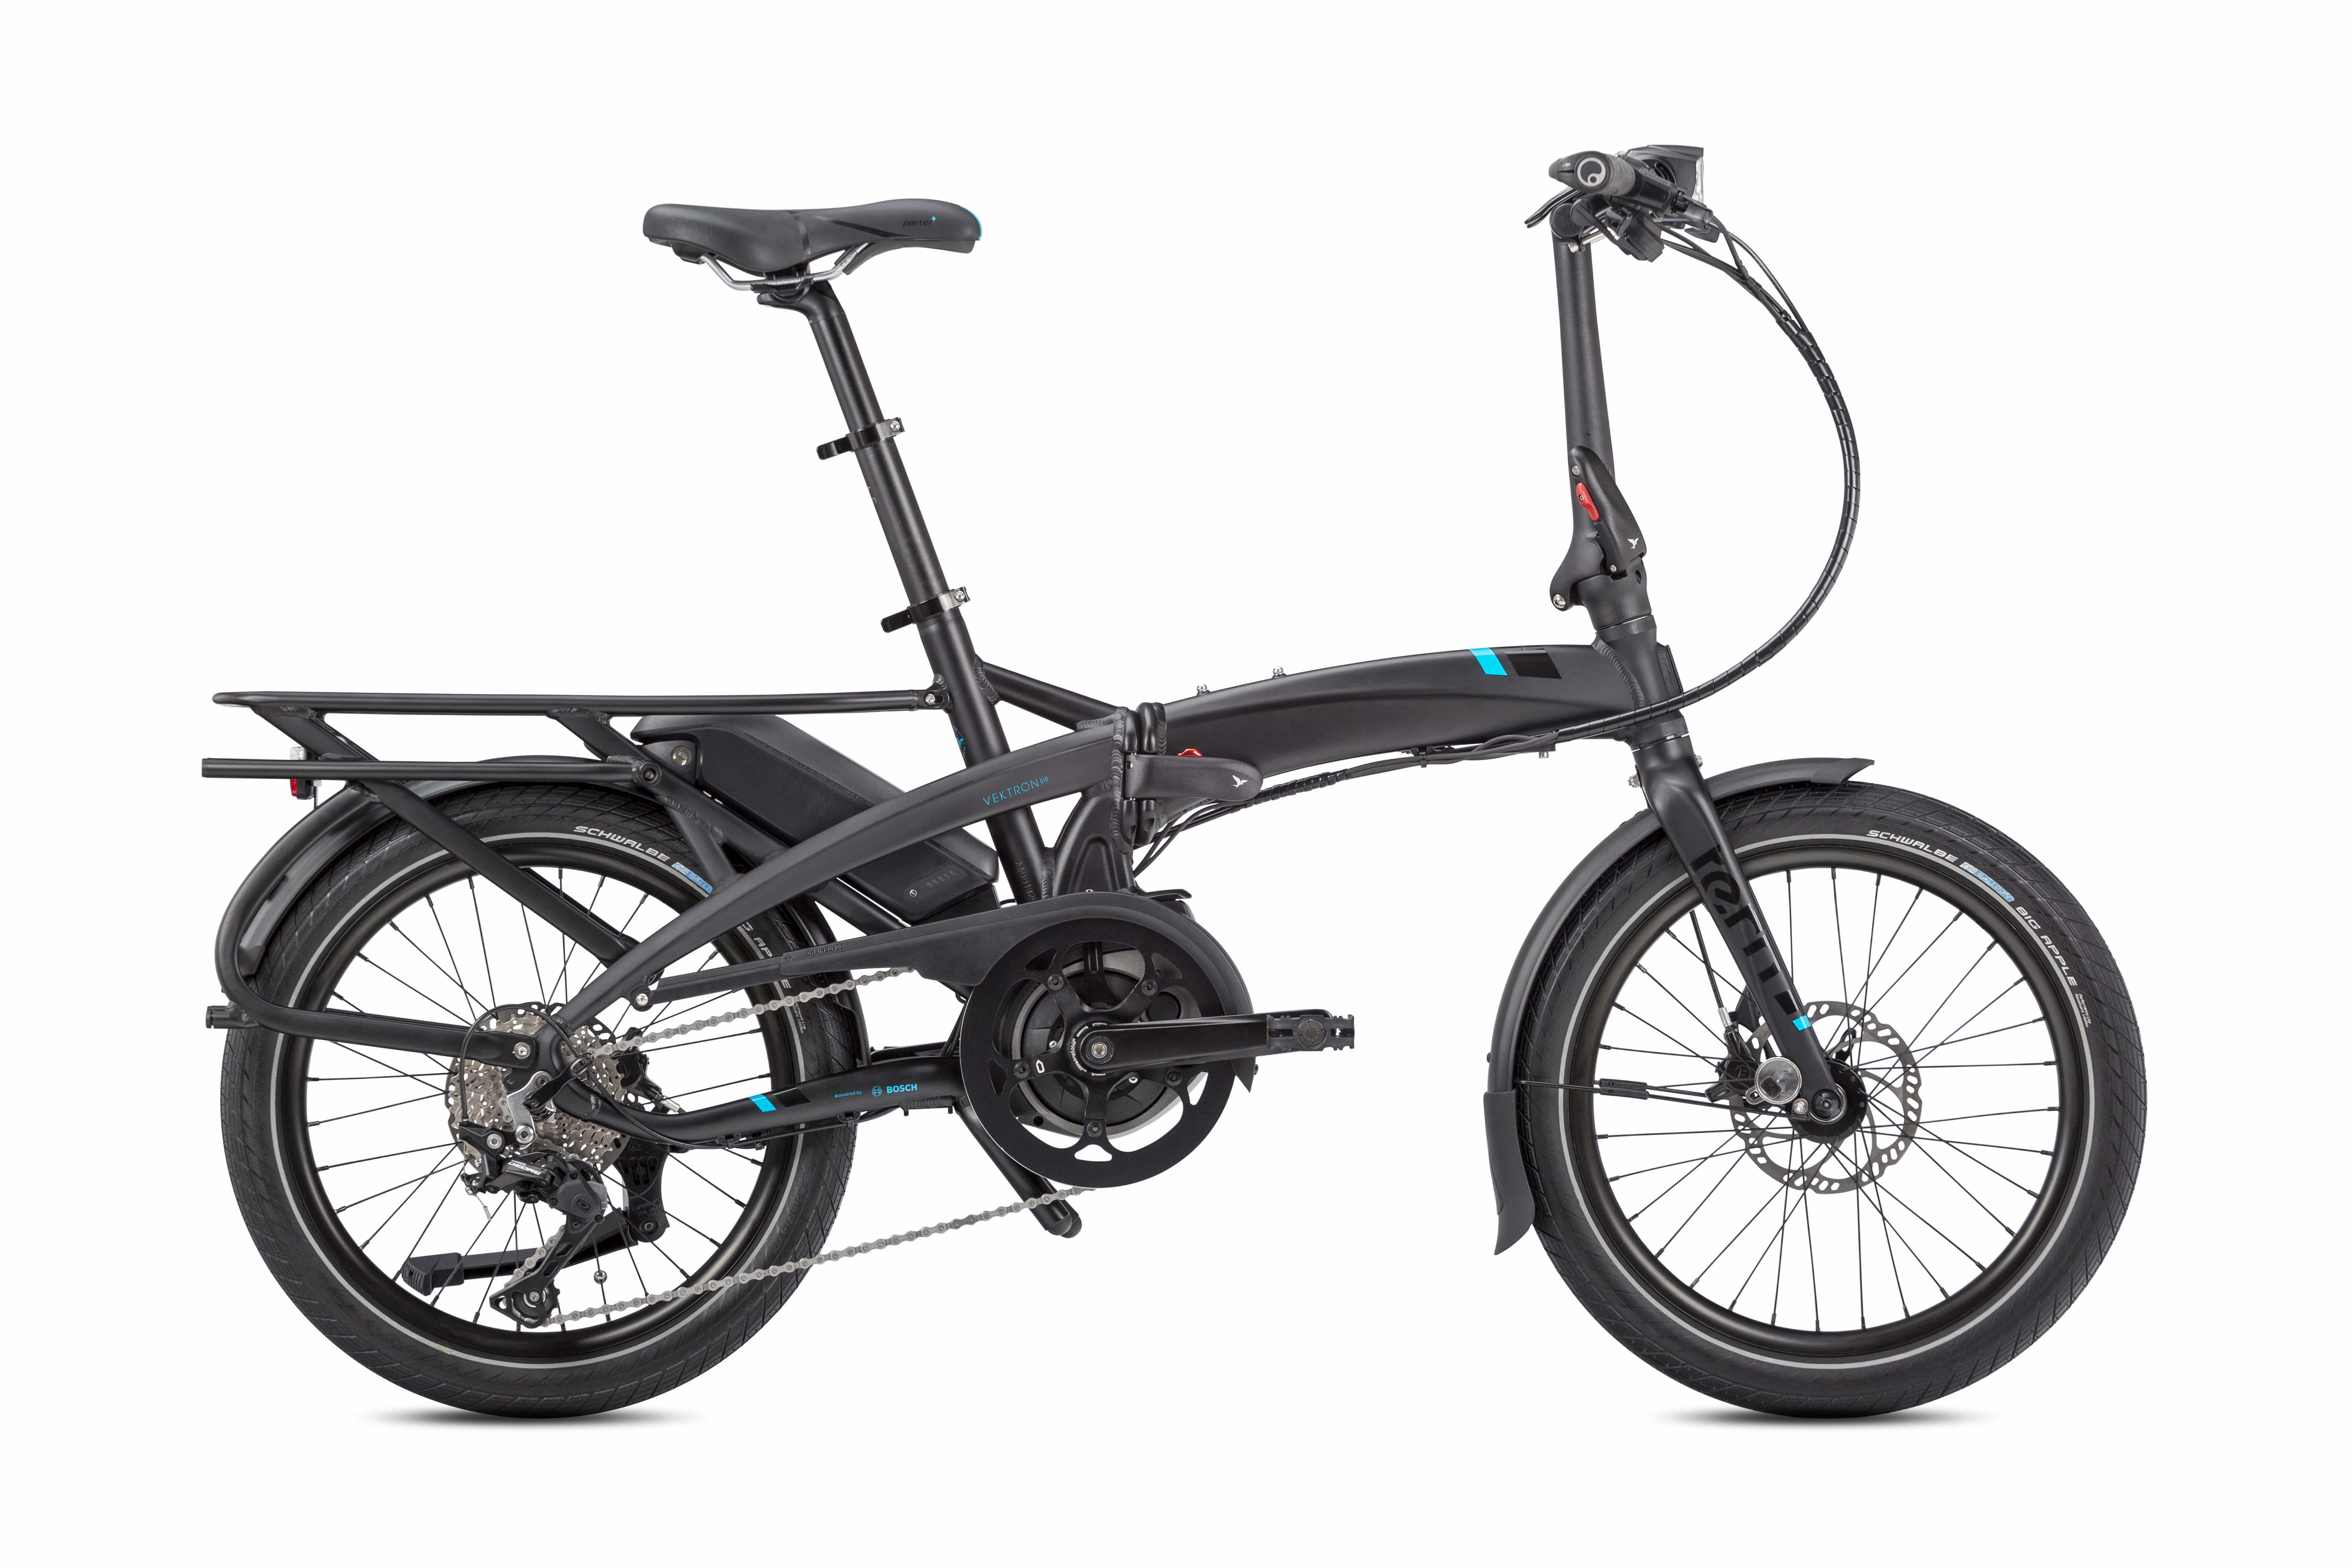 Tern Upgrades Vektron Folding eBike Line